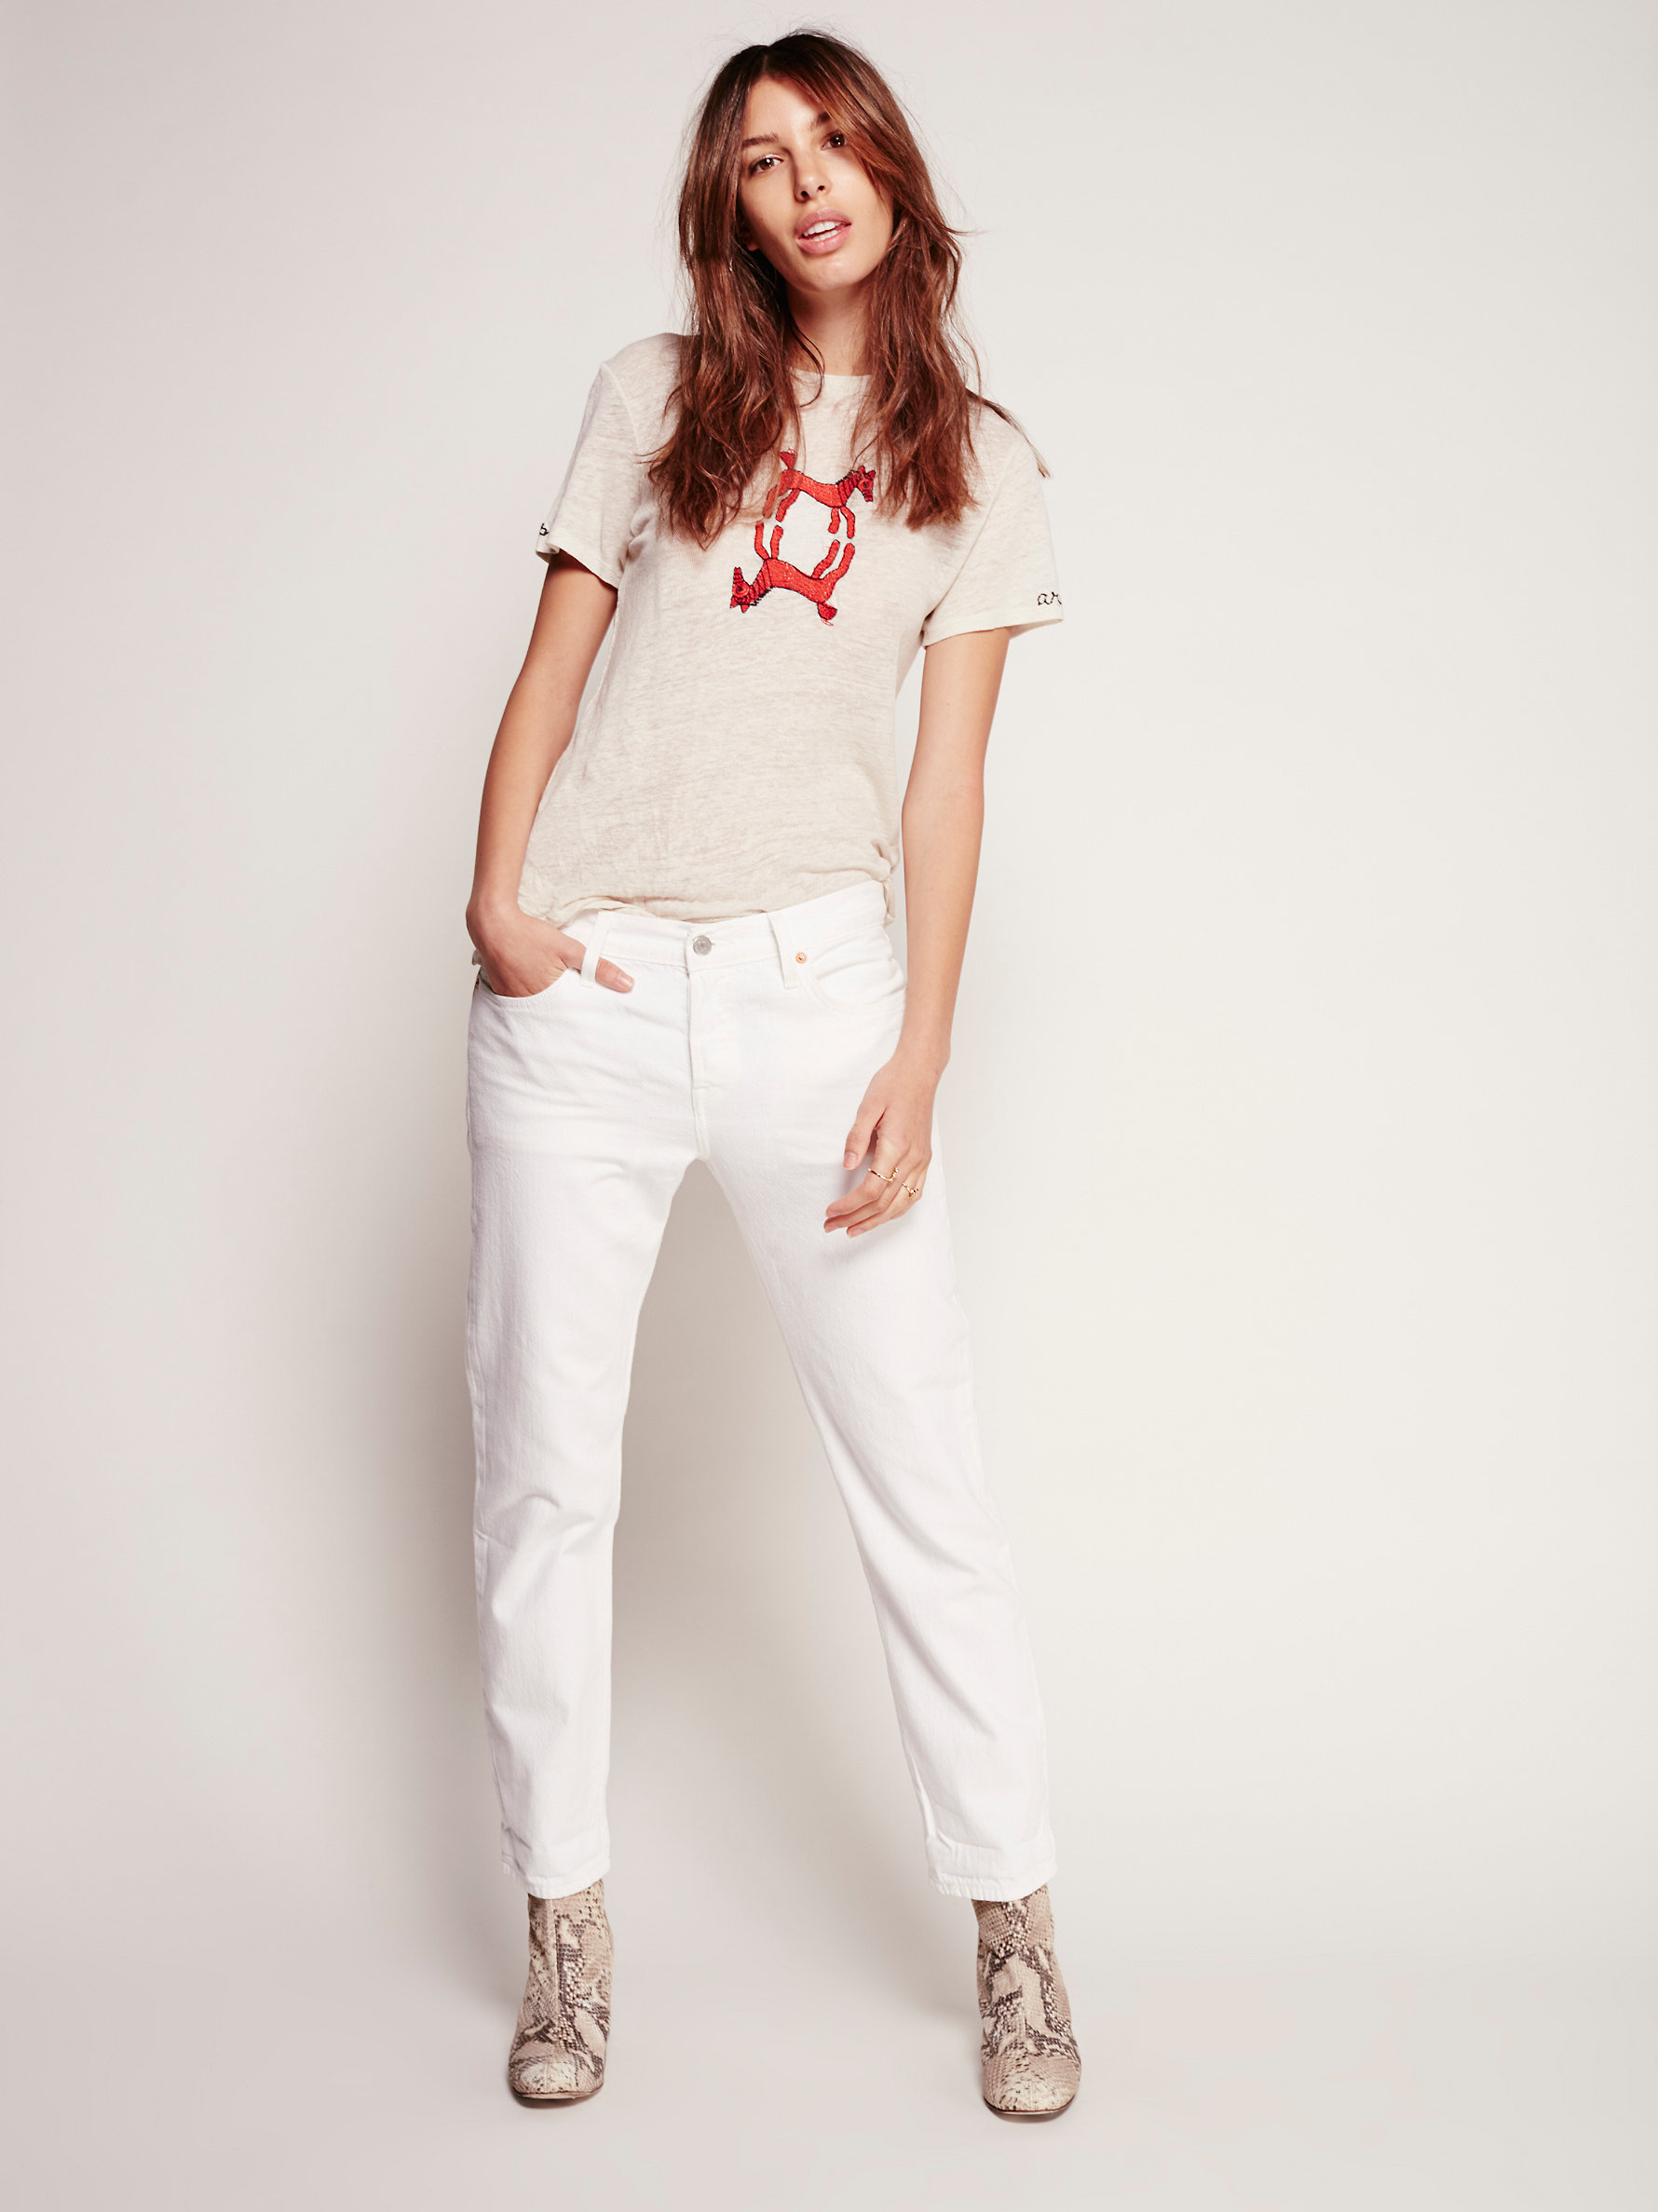 eae4c7cb Free People Levi's 501 Ct Jean in White - Lyst